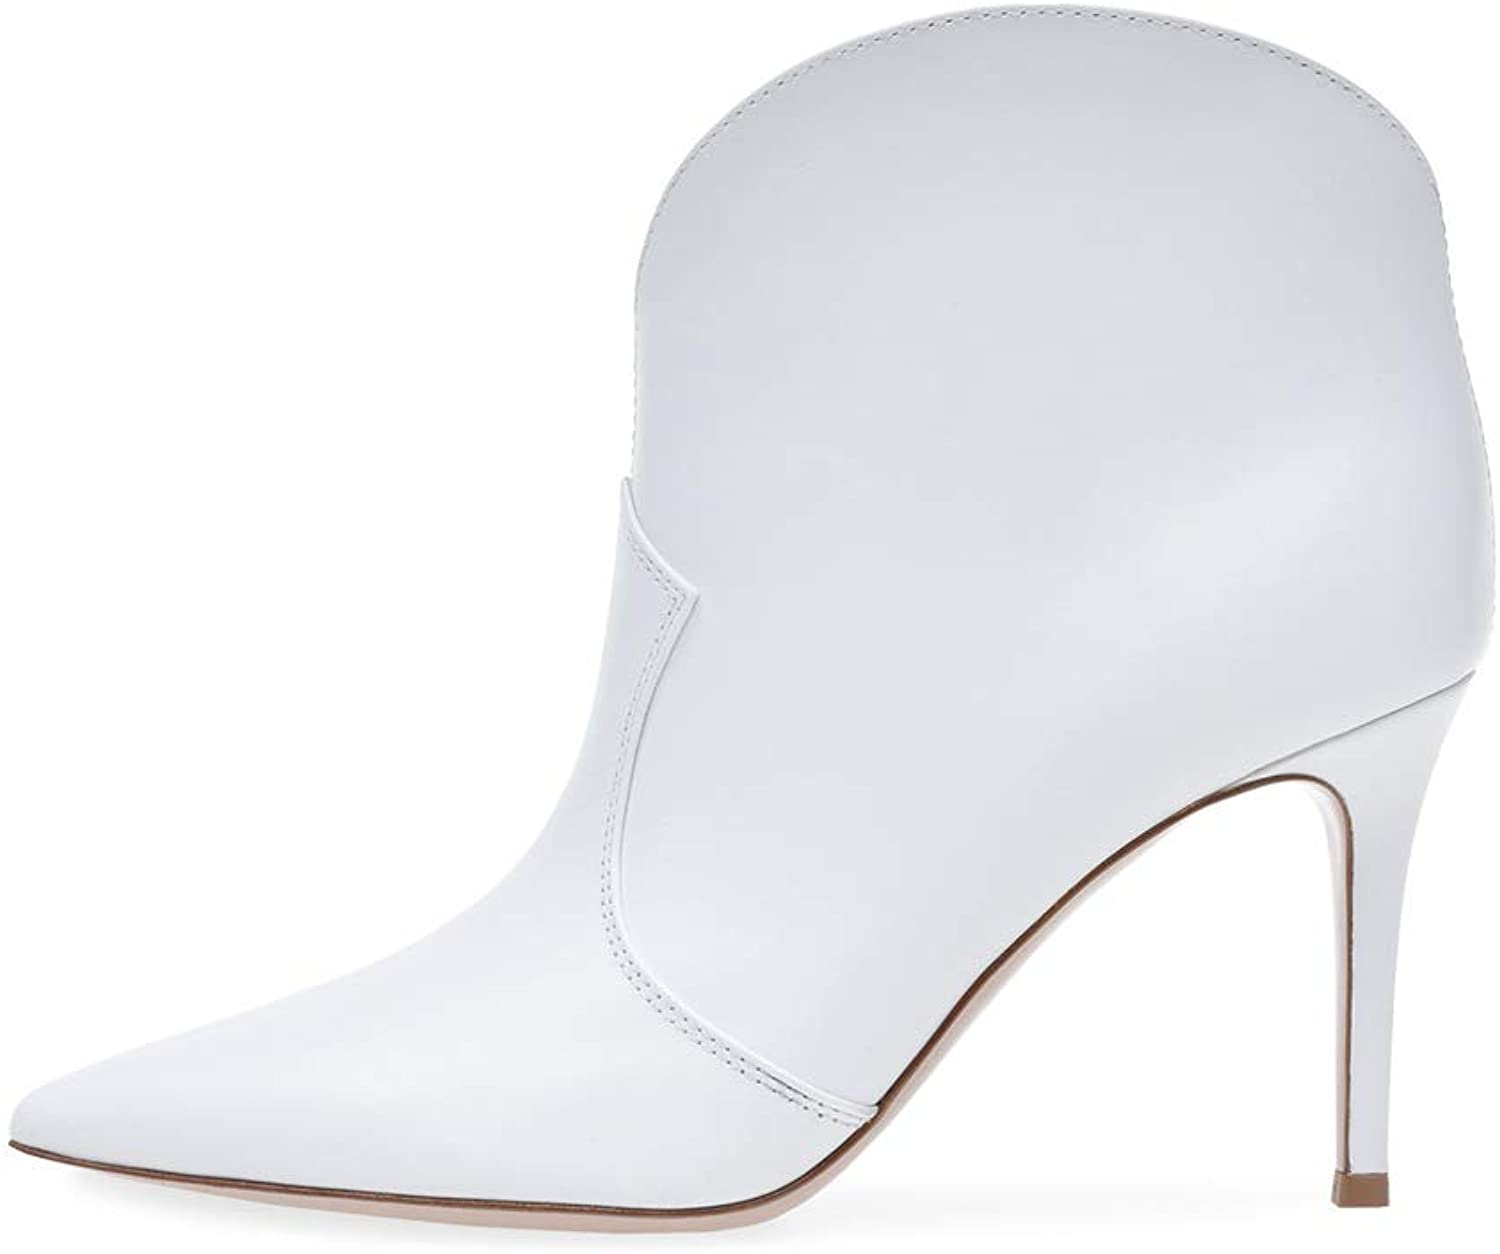 Women's Booties, White Pointed High Heel Ankle Boots Women's PU Rubber Stiletto Heel Fashion Boots & Martin Boots (color   White, Size   40)